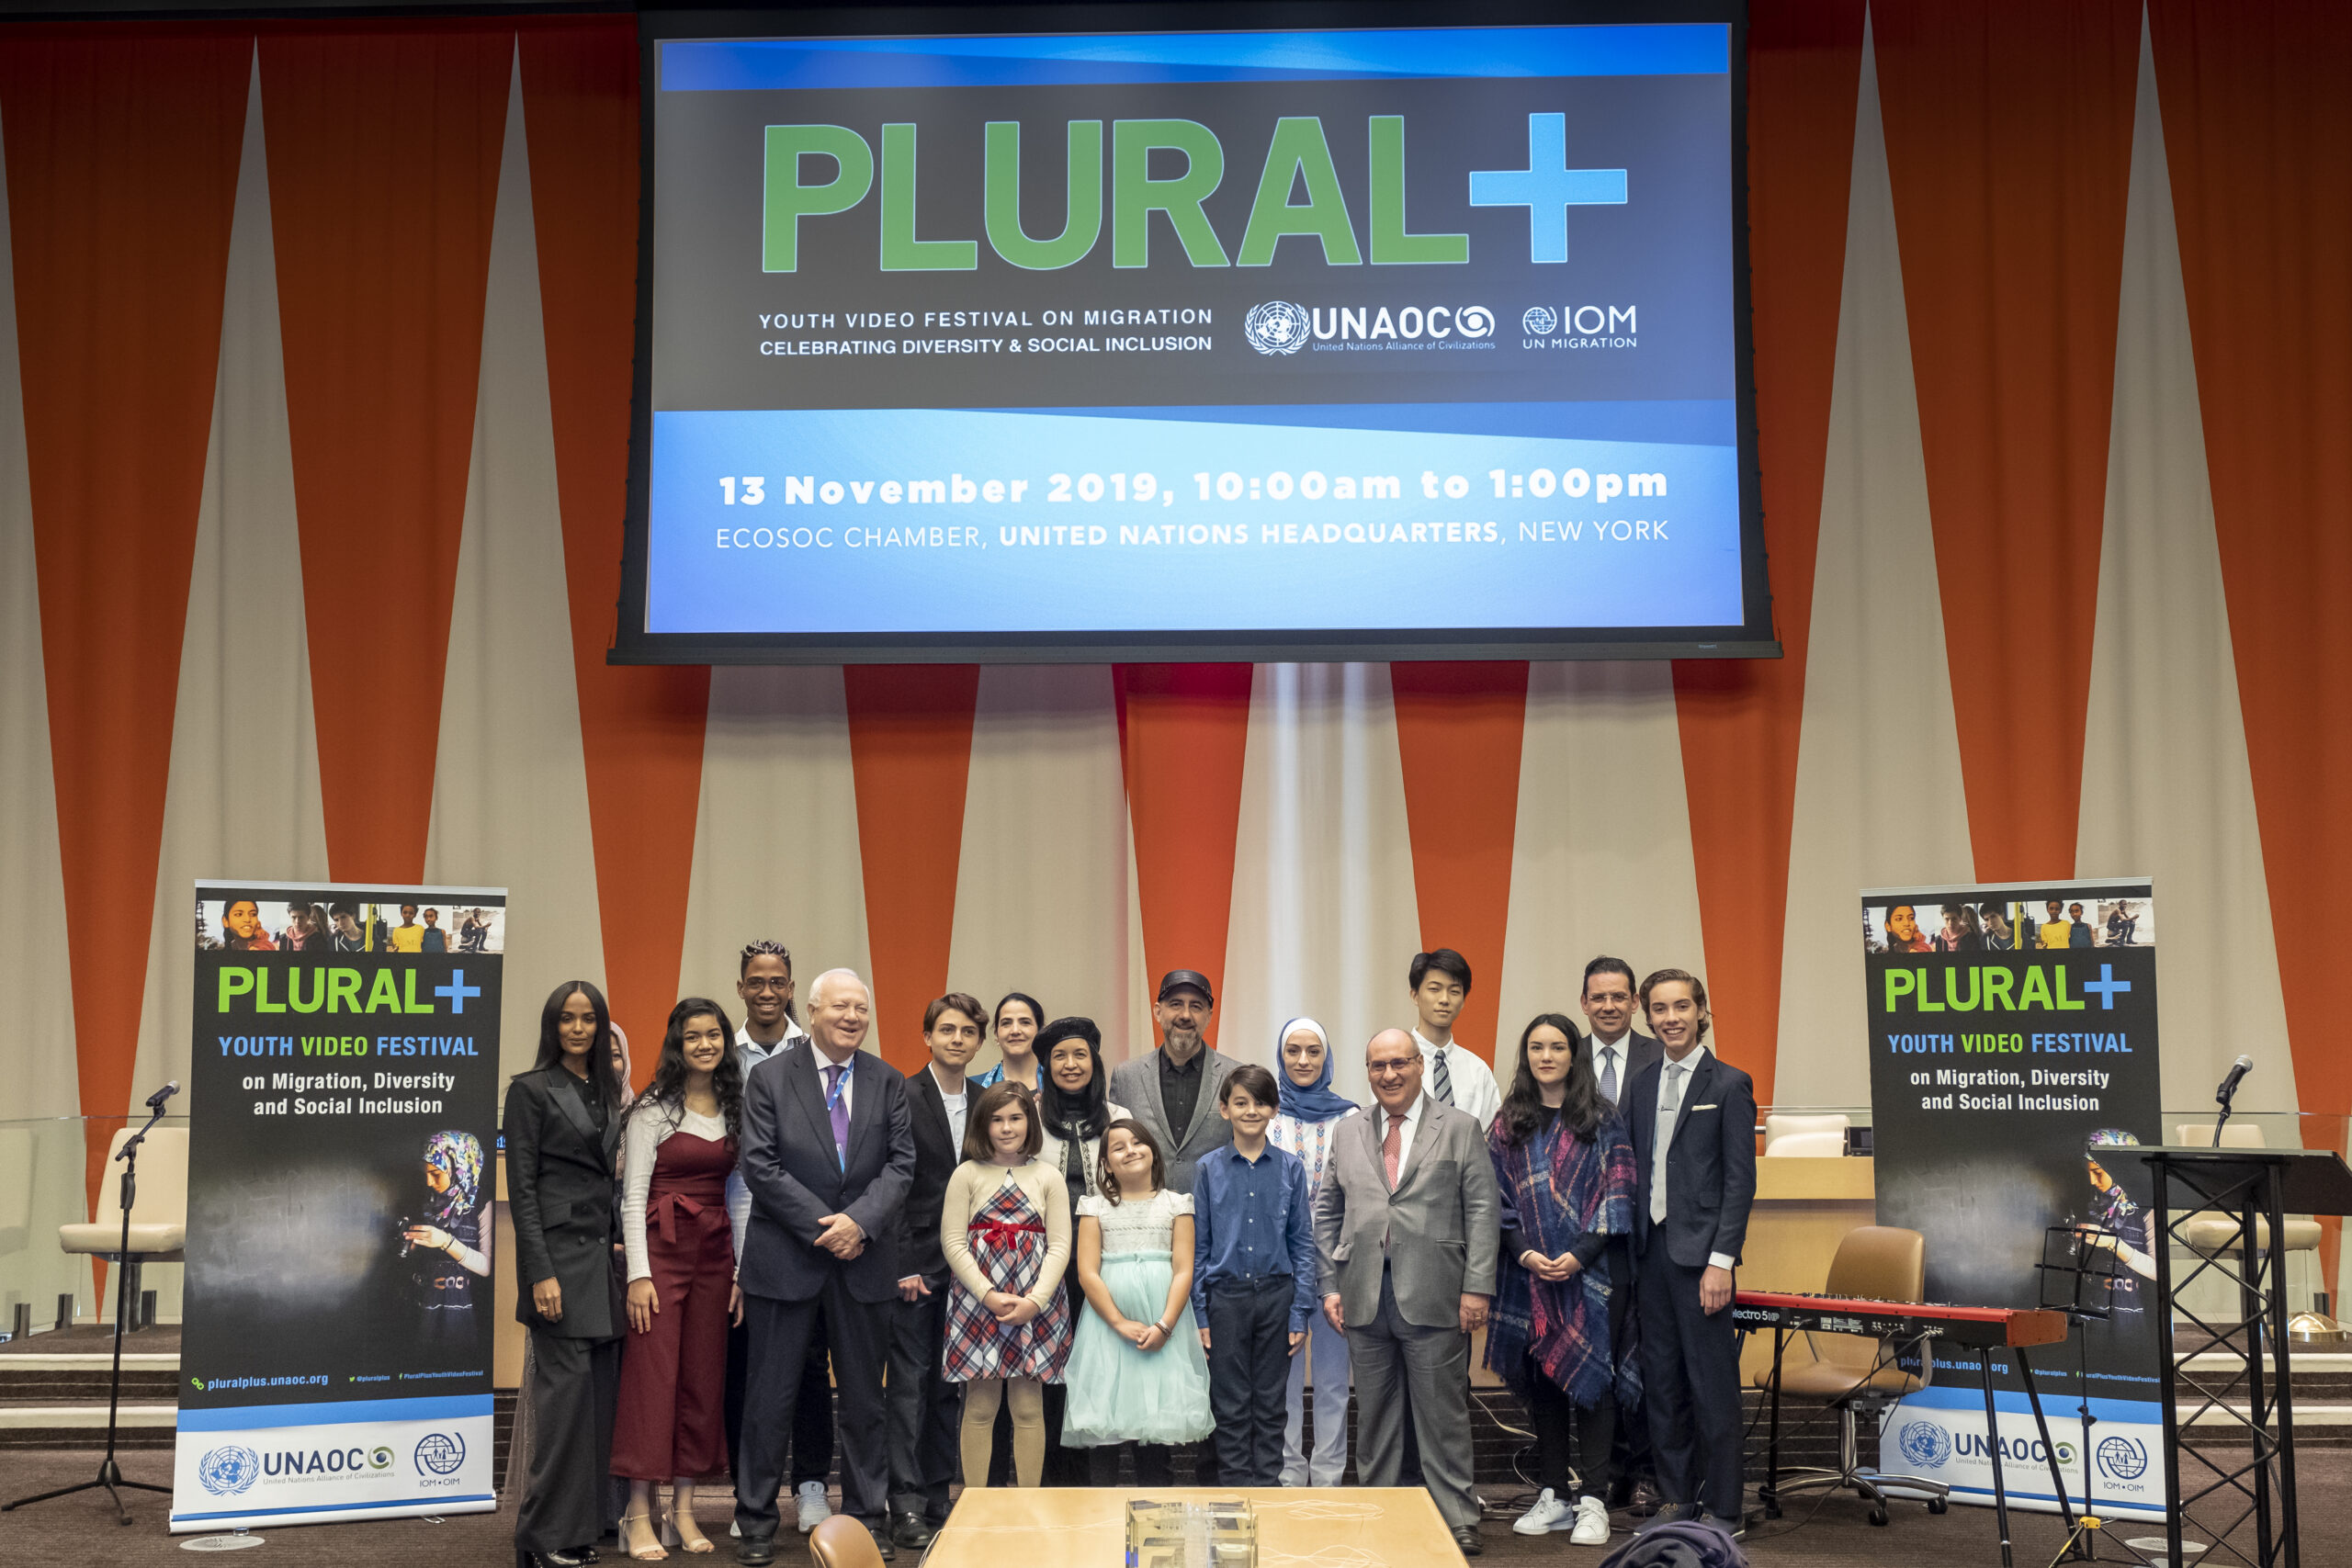 PLURAL+ Youth Video Festival